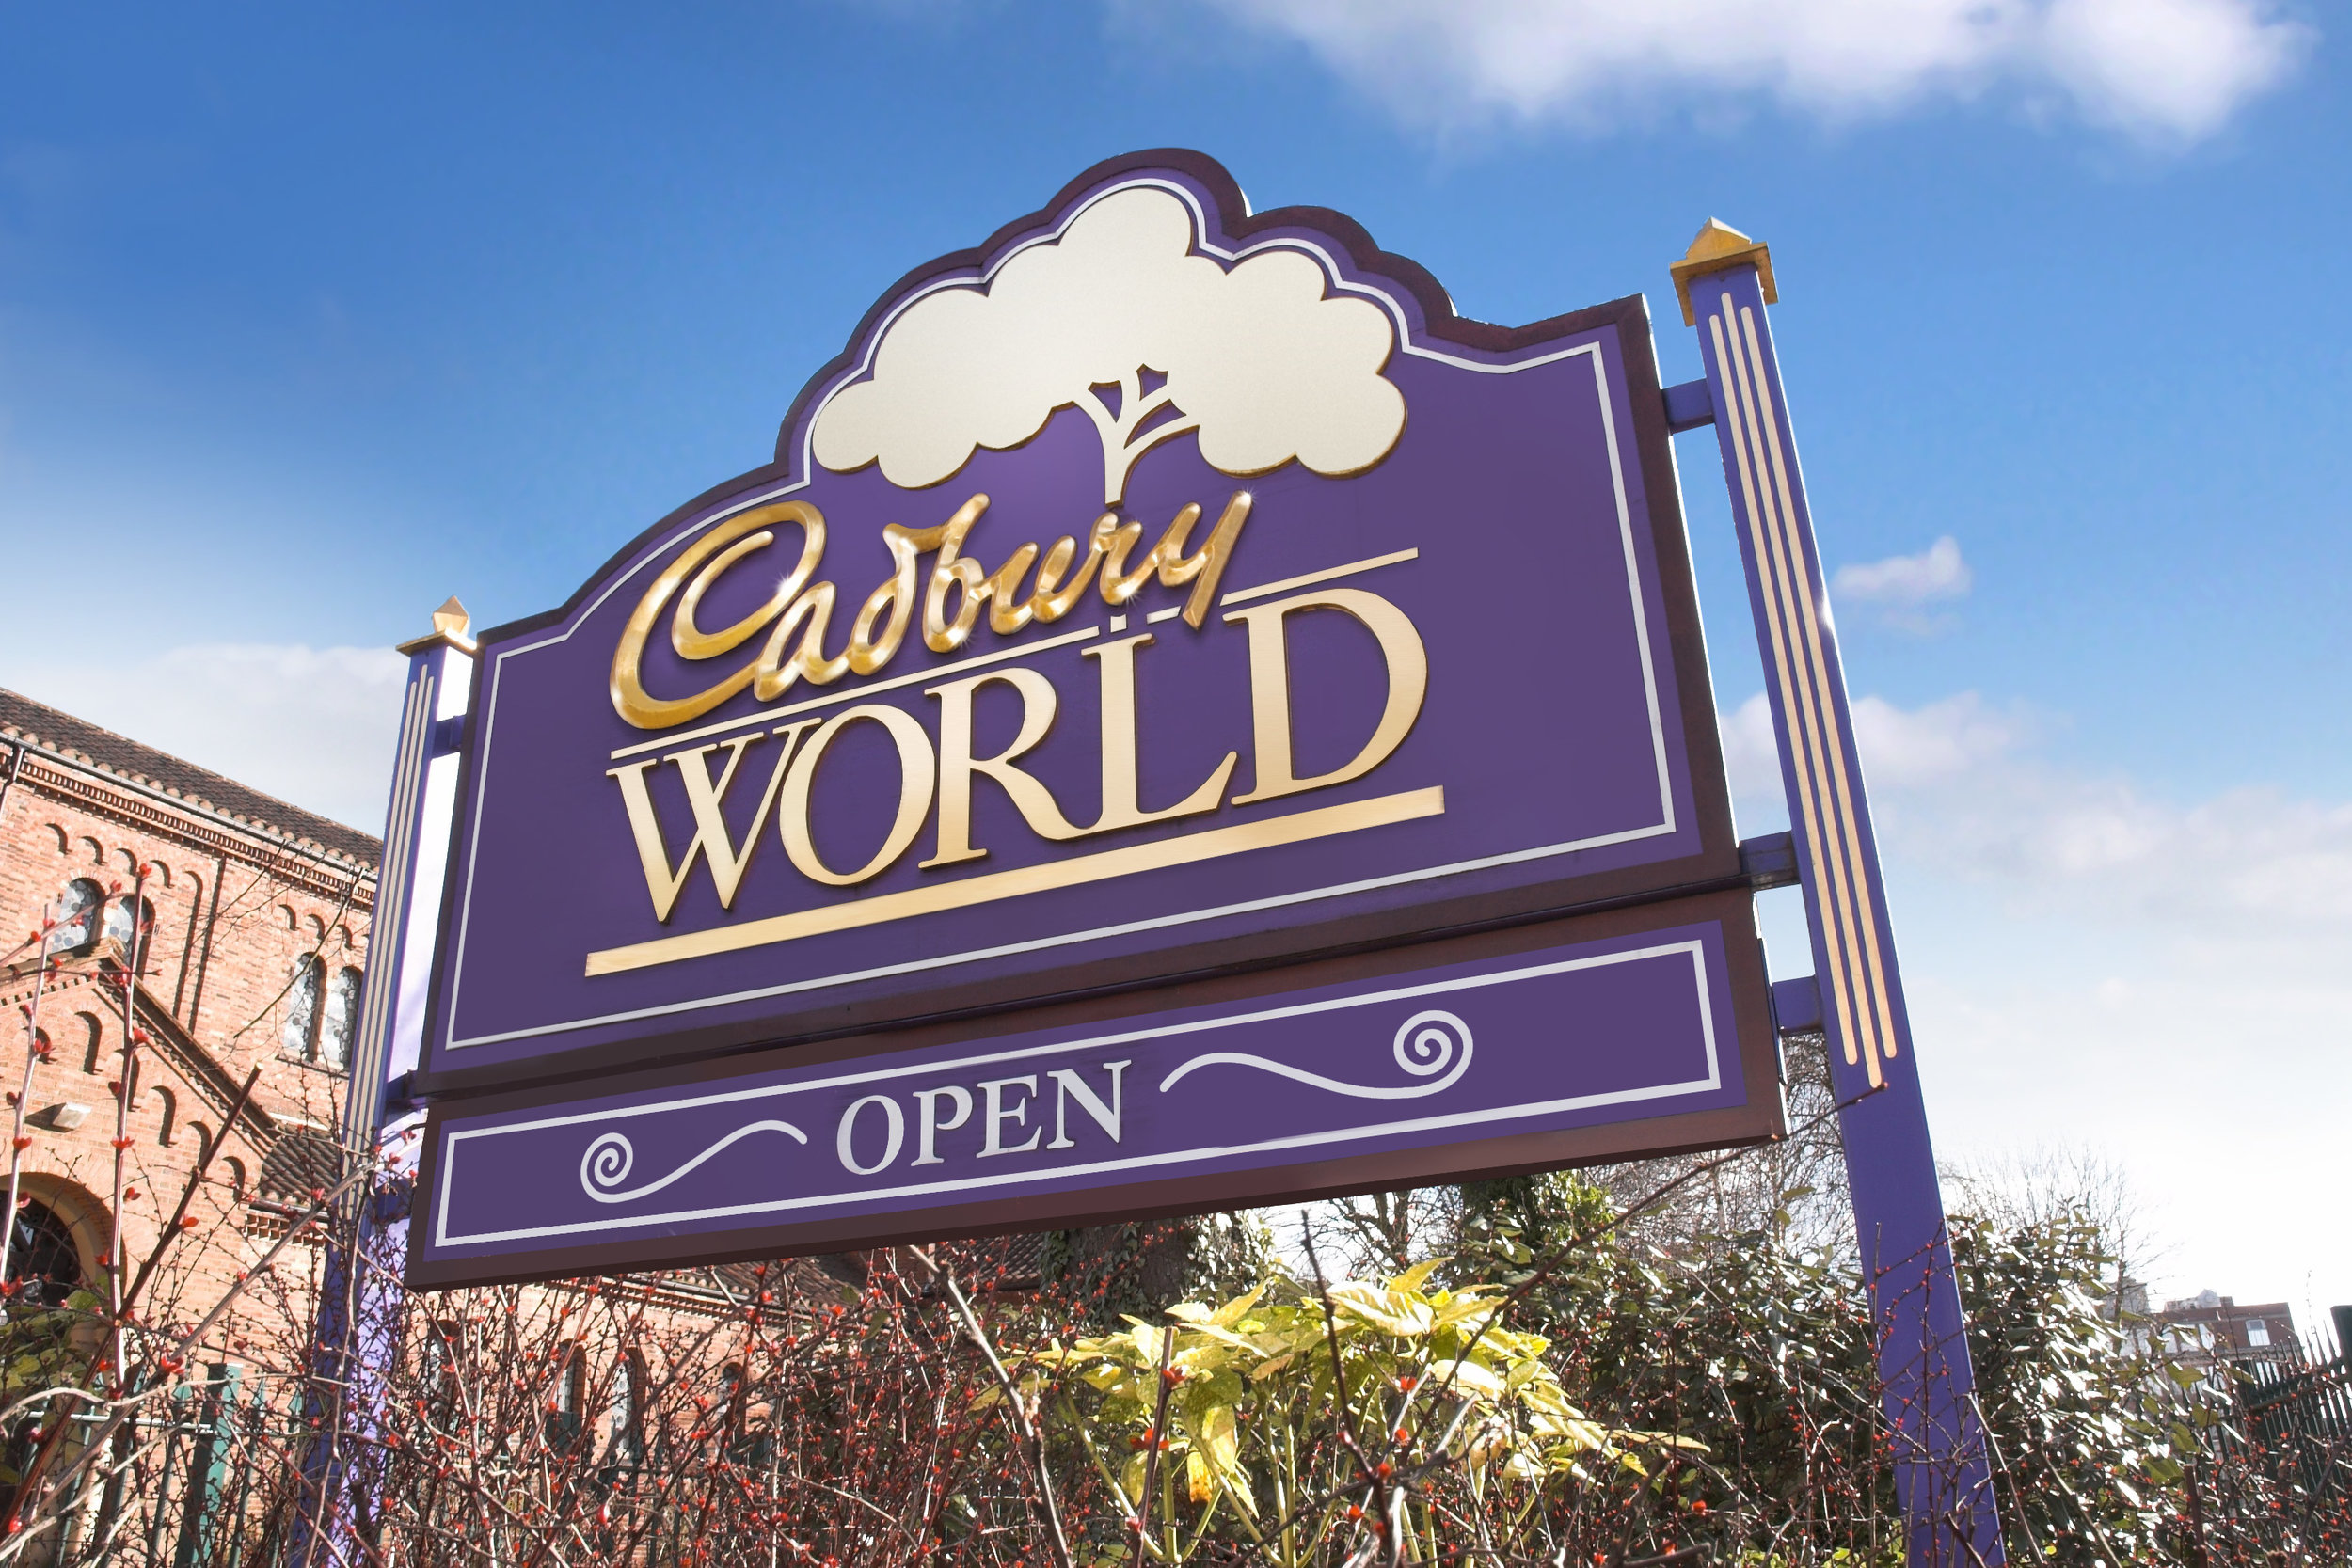 Cadbury World - View project